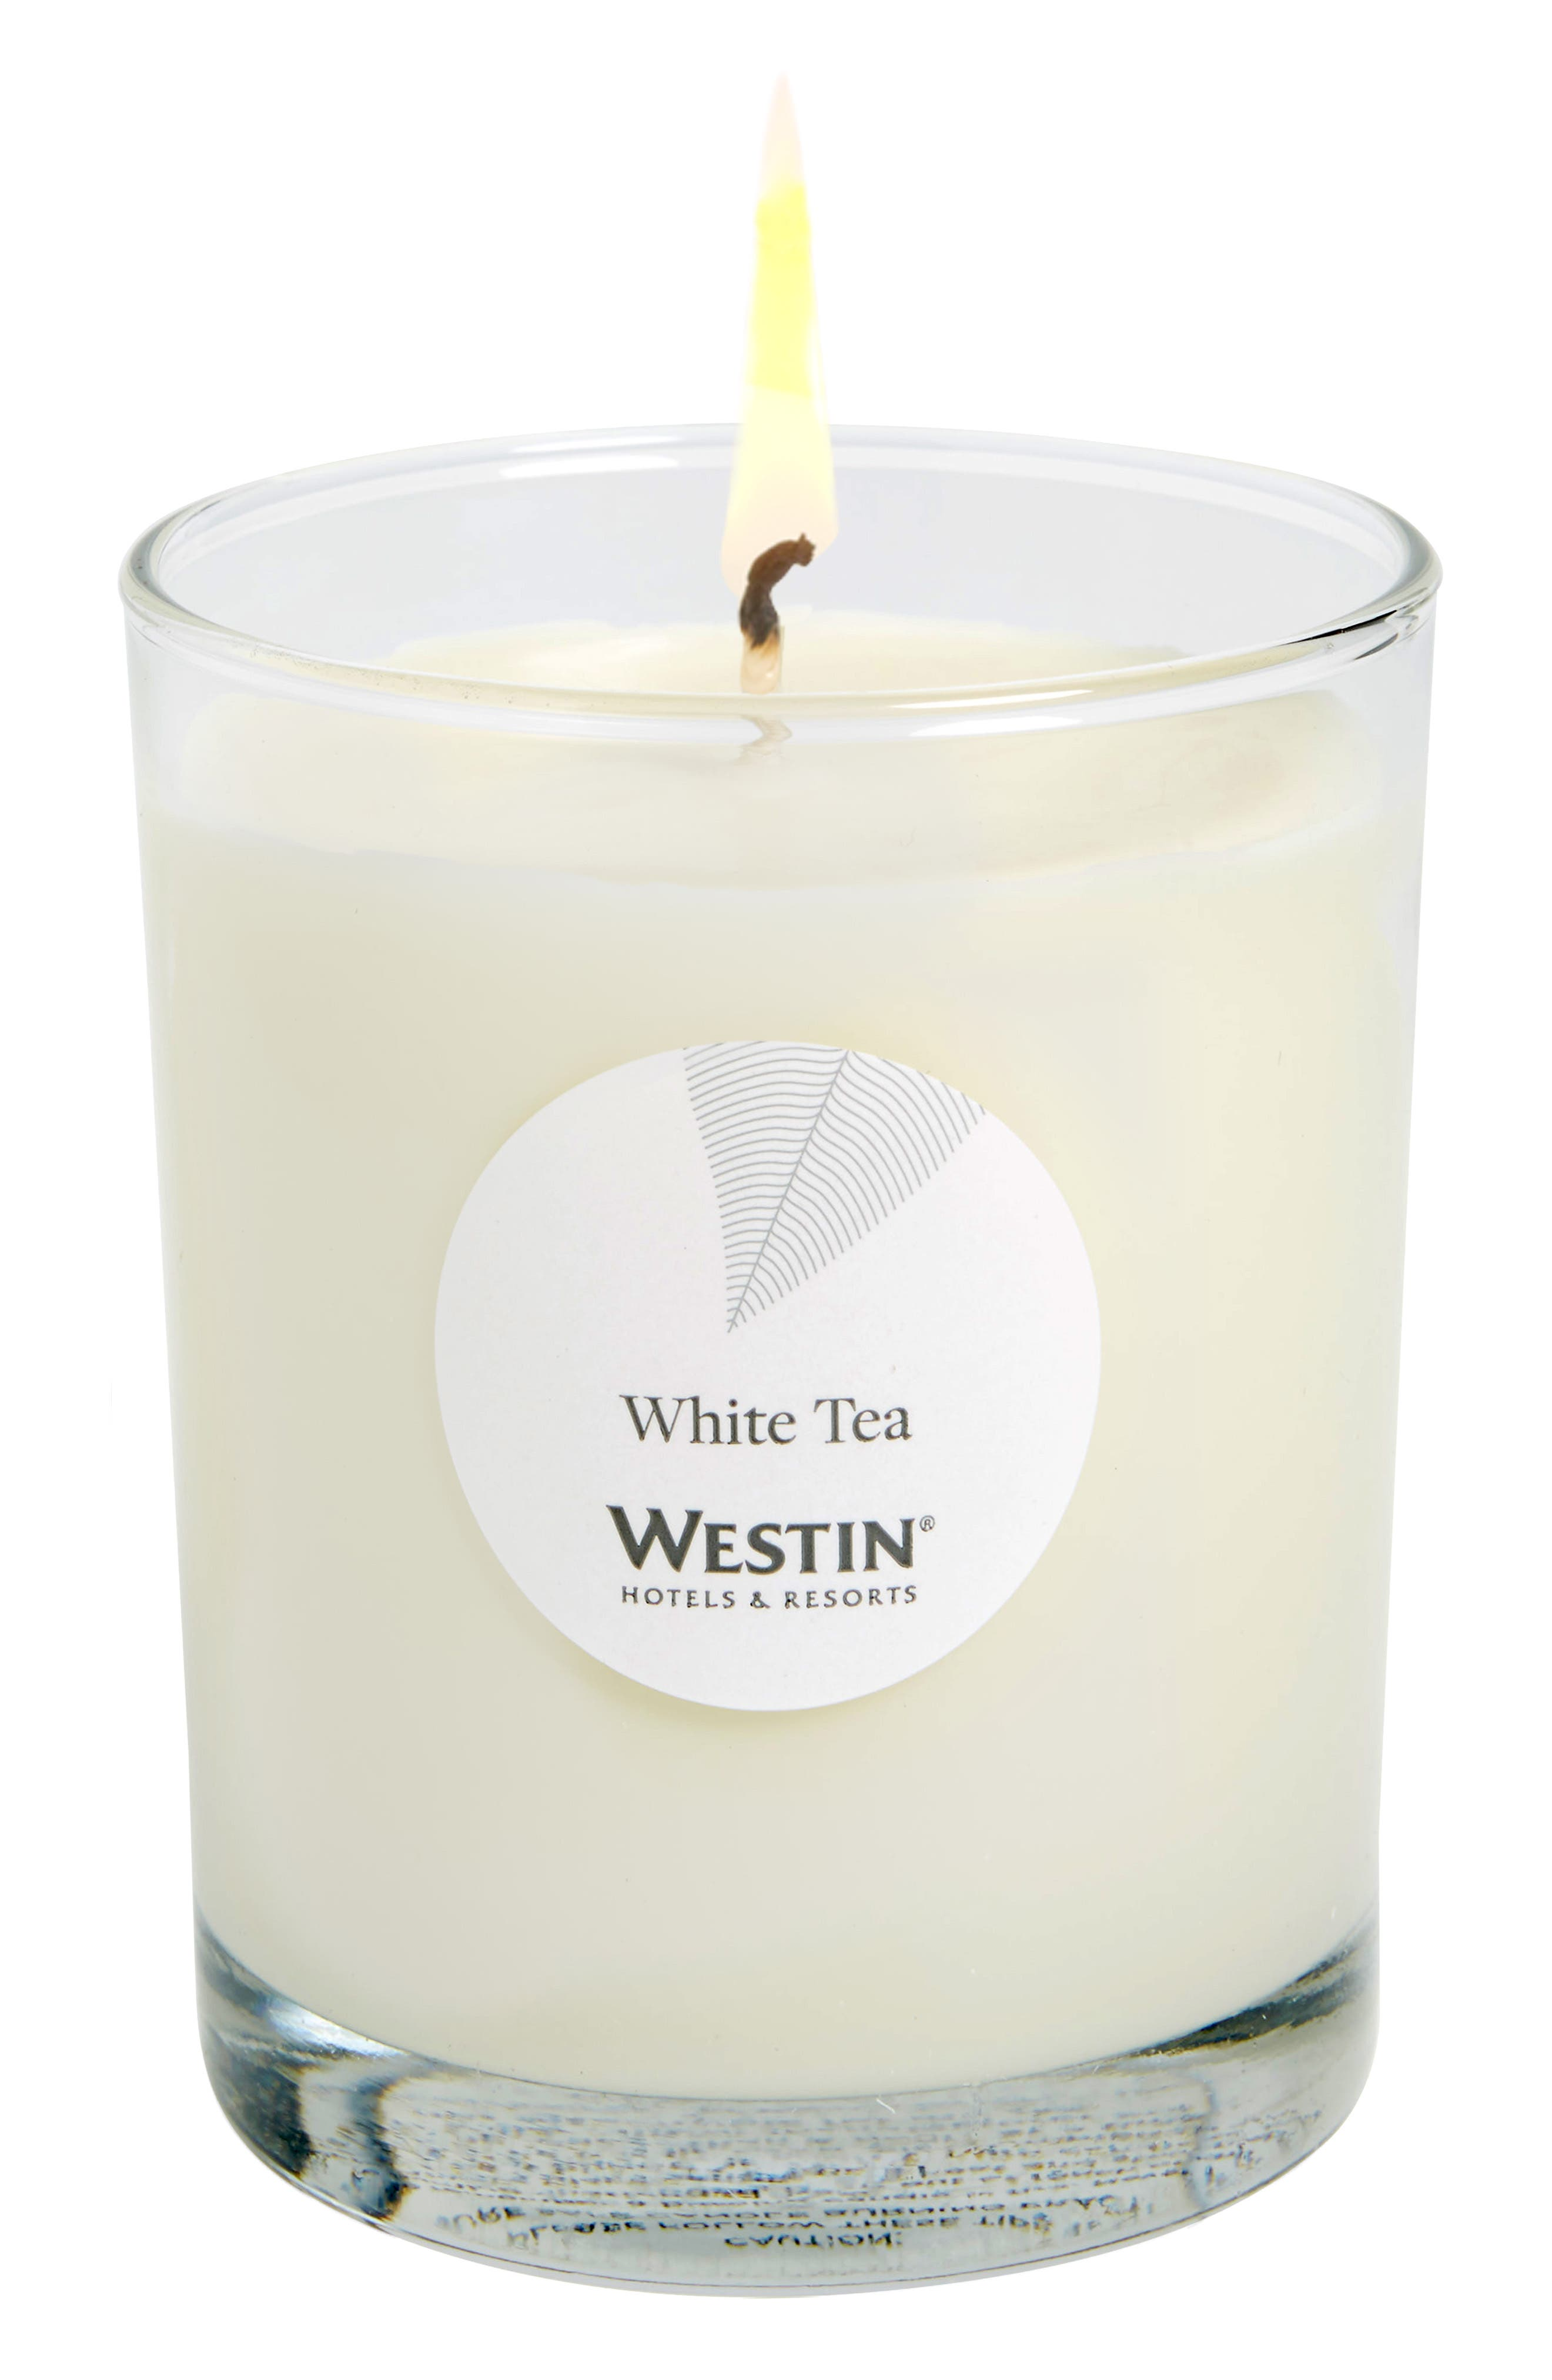 Westin At Home White Tea Candle (Online Only)